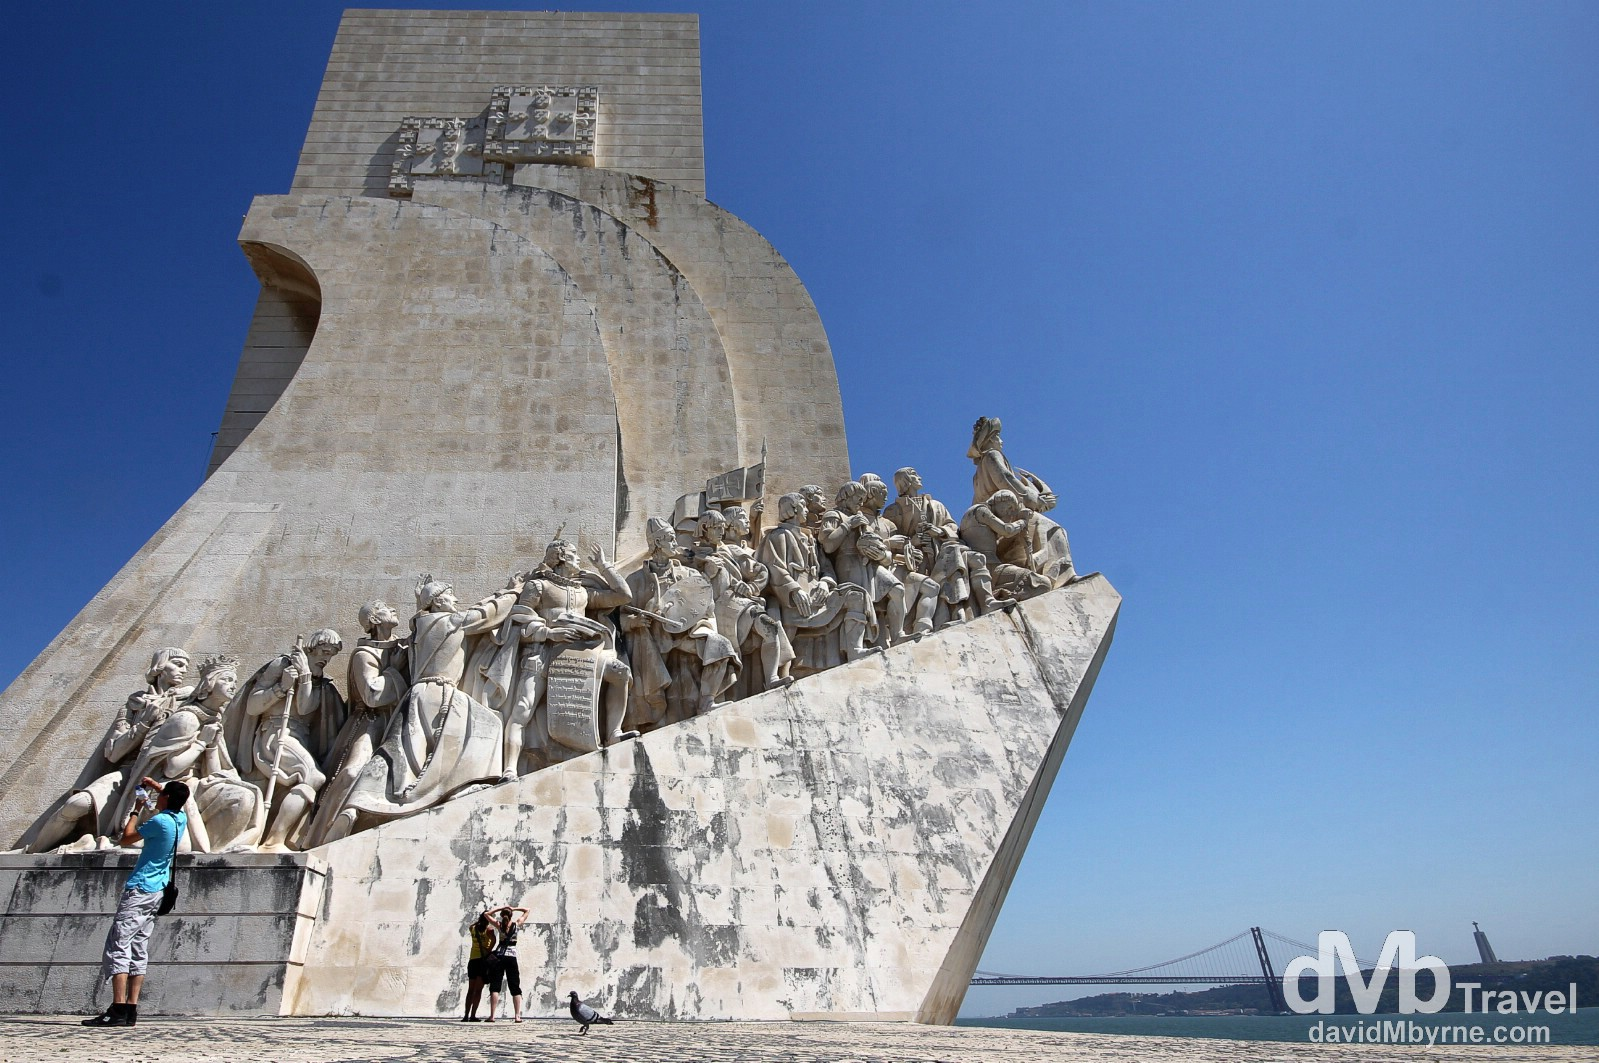 Monument To The Discoveries, Belem, Lisbon, Portugal. August 26th 2013.